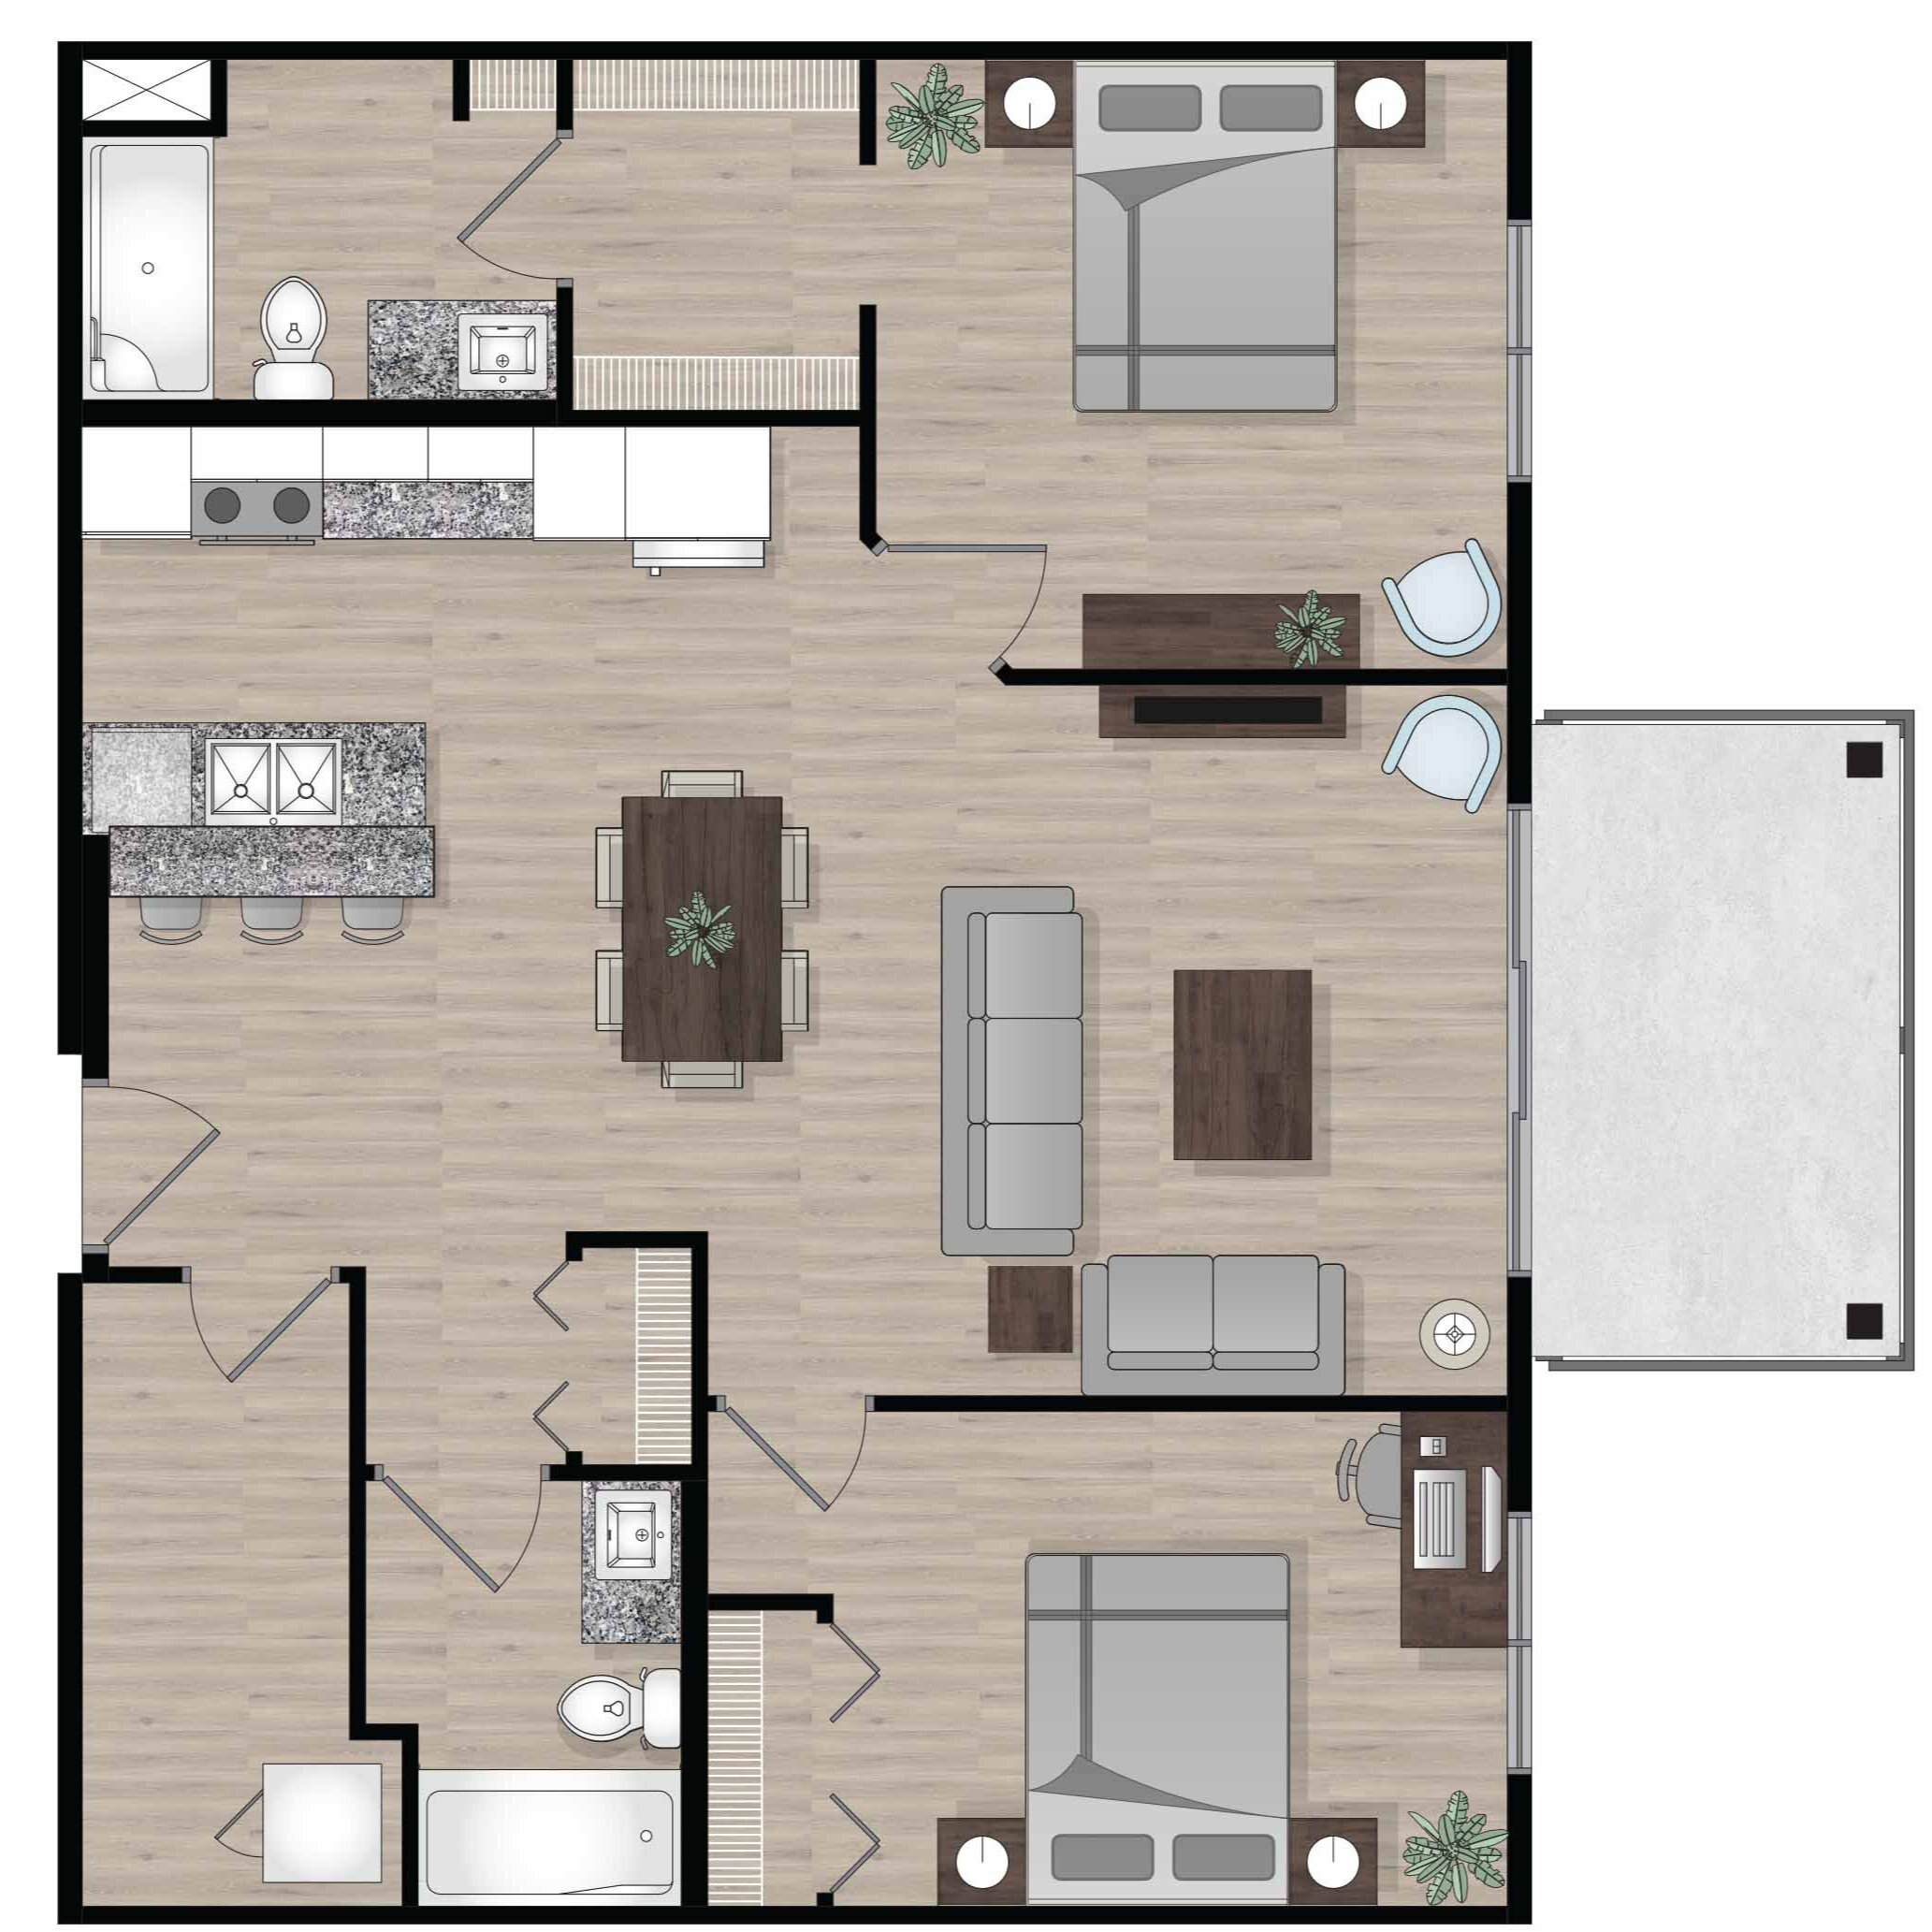 SUITE A5 - 1,000 SQ.FT2 BEDROOM2 BATHROOM